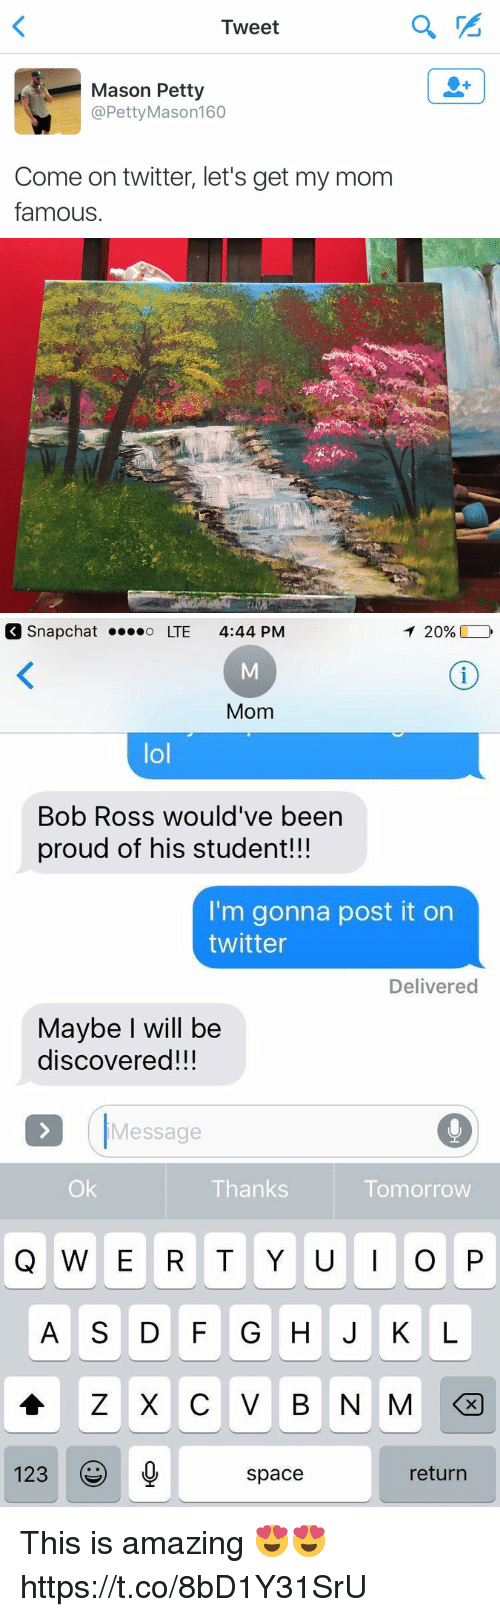 Lol, Petty, and Twitter: Tweet  Mason Petty  @Petty Mason 160  Come on twitter, let's get my mom  famous   T 20%,  Snap Chat o LTE 4:44 PM  Mom  lol  Bob Ross would've been  proud of his student!!!  I'm gonna post it on  twitter  Delivered  Maybe will be  discovered!!!  Message  Thanks  Tomorrow  Q W E R T Y U I O P  123  return  space This is amazing 😍😍 https://t.co/8bD1Y31SrU